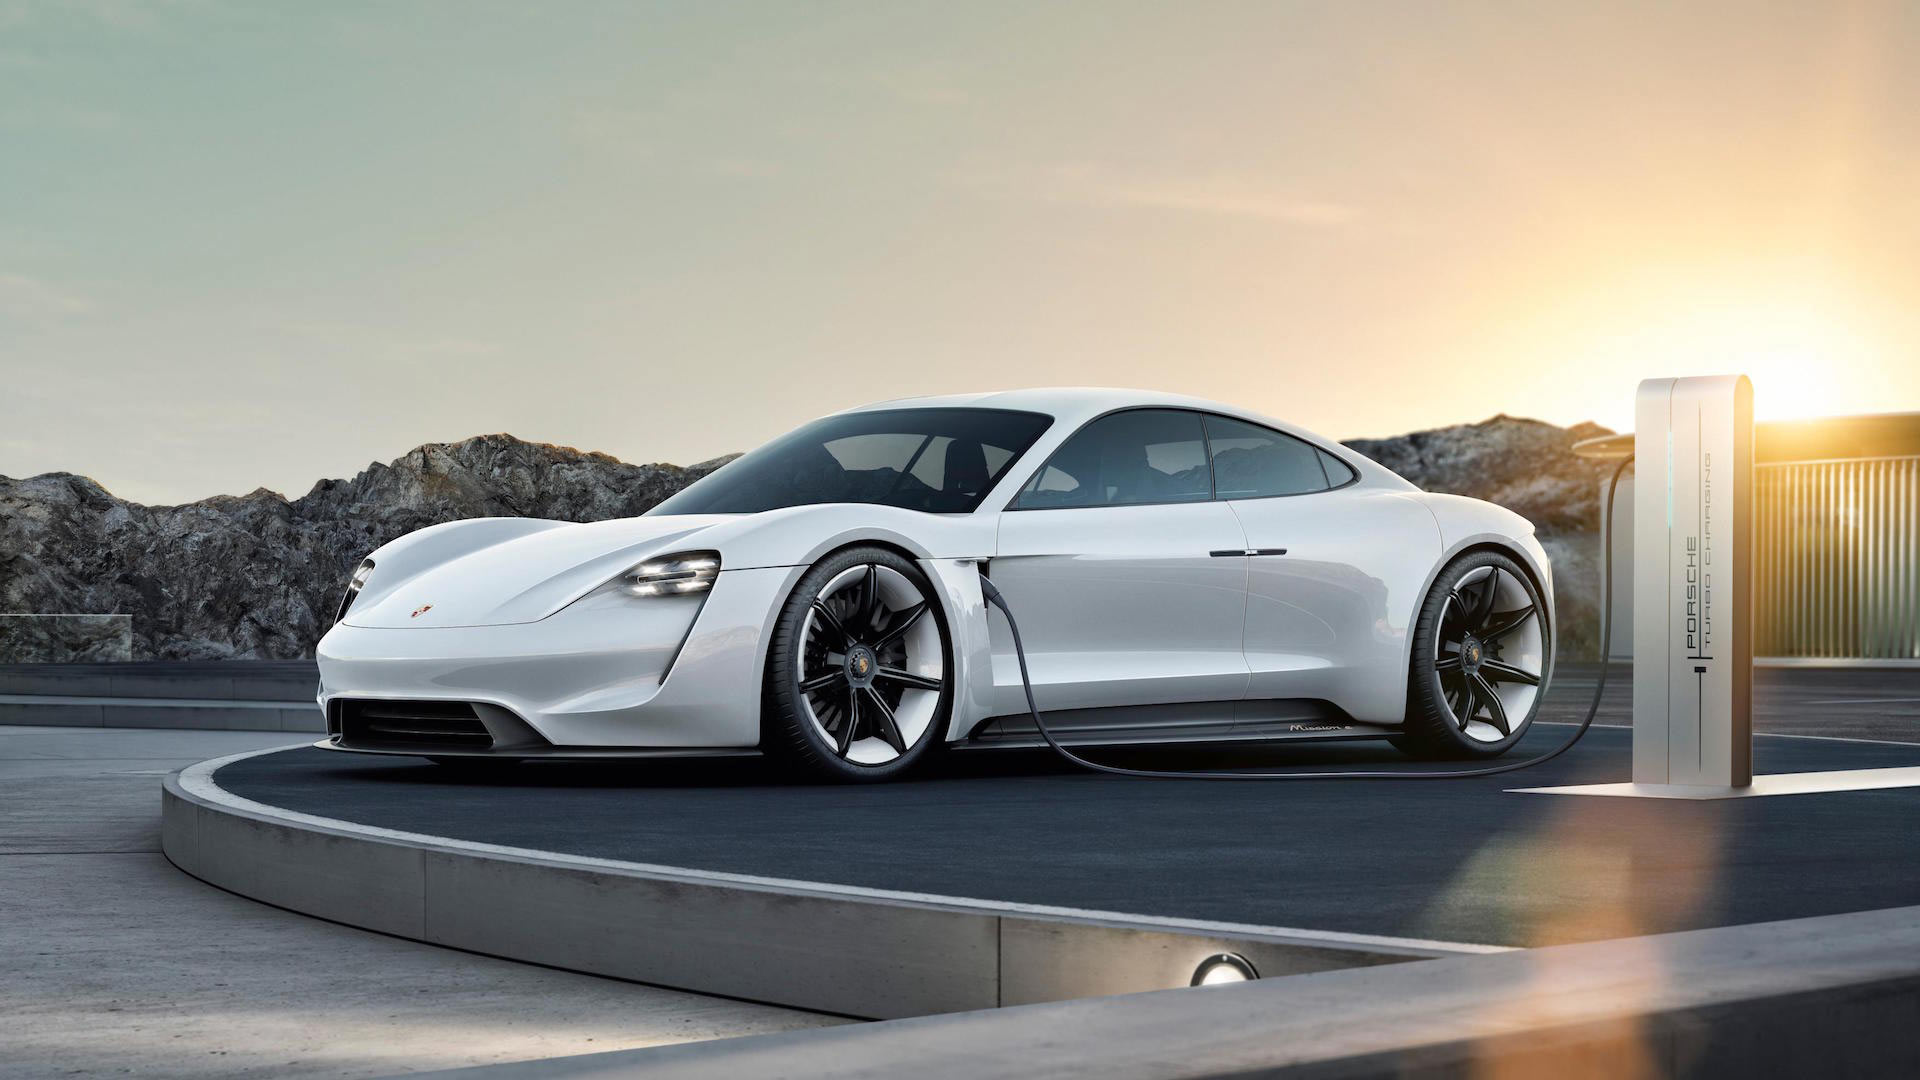 Tesla faces stiff competition as Porsche plans to boost Taycan production